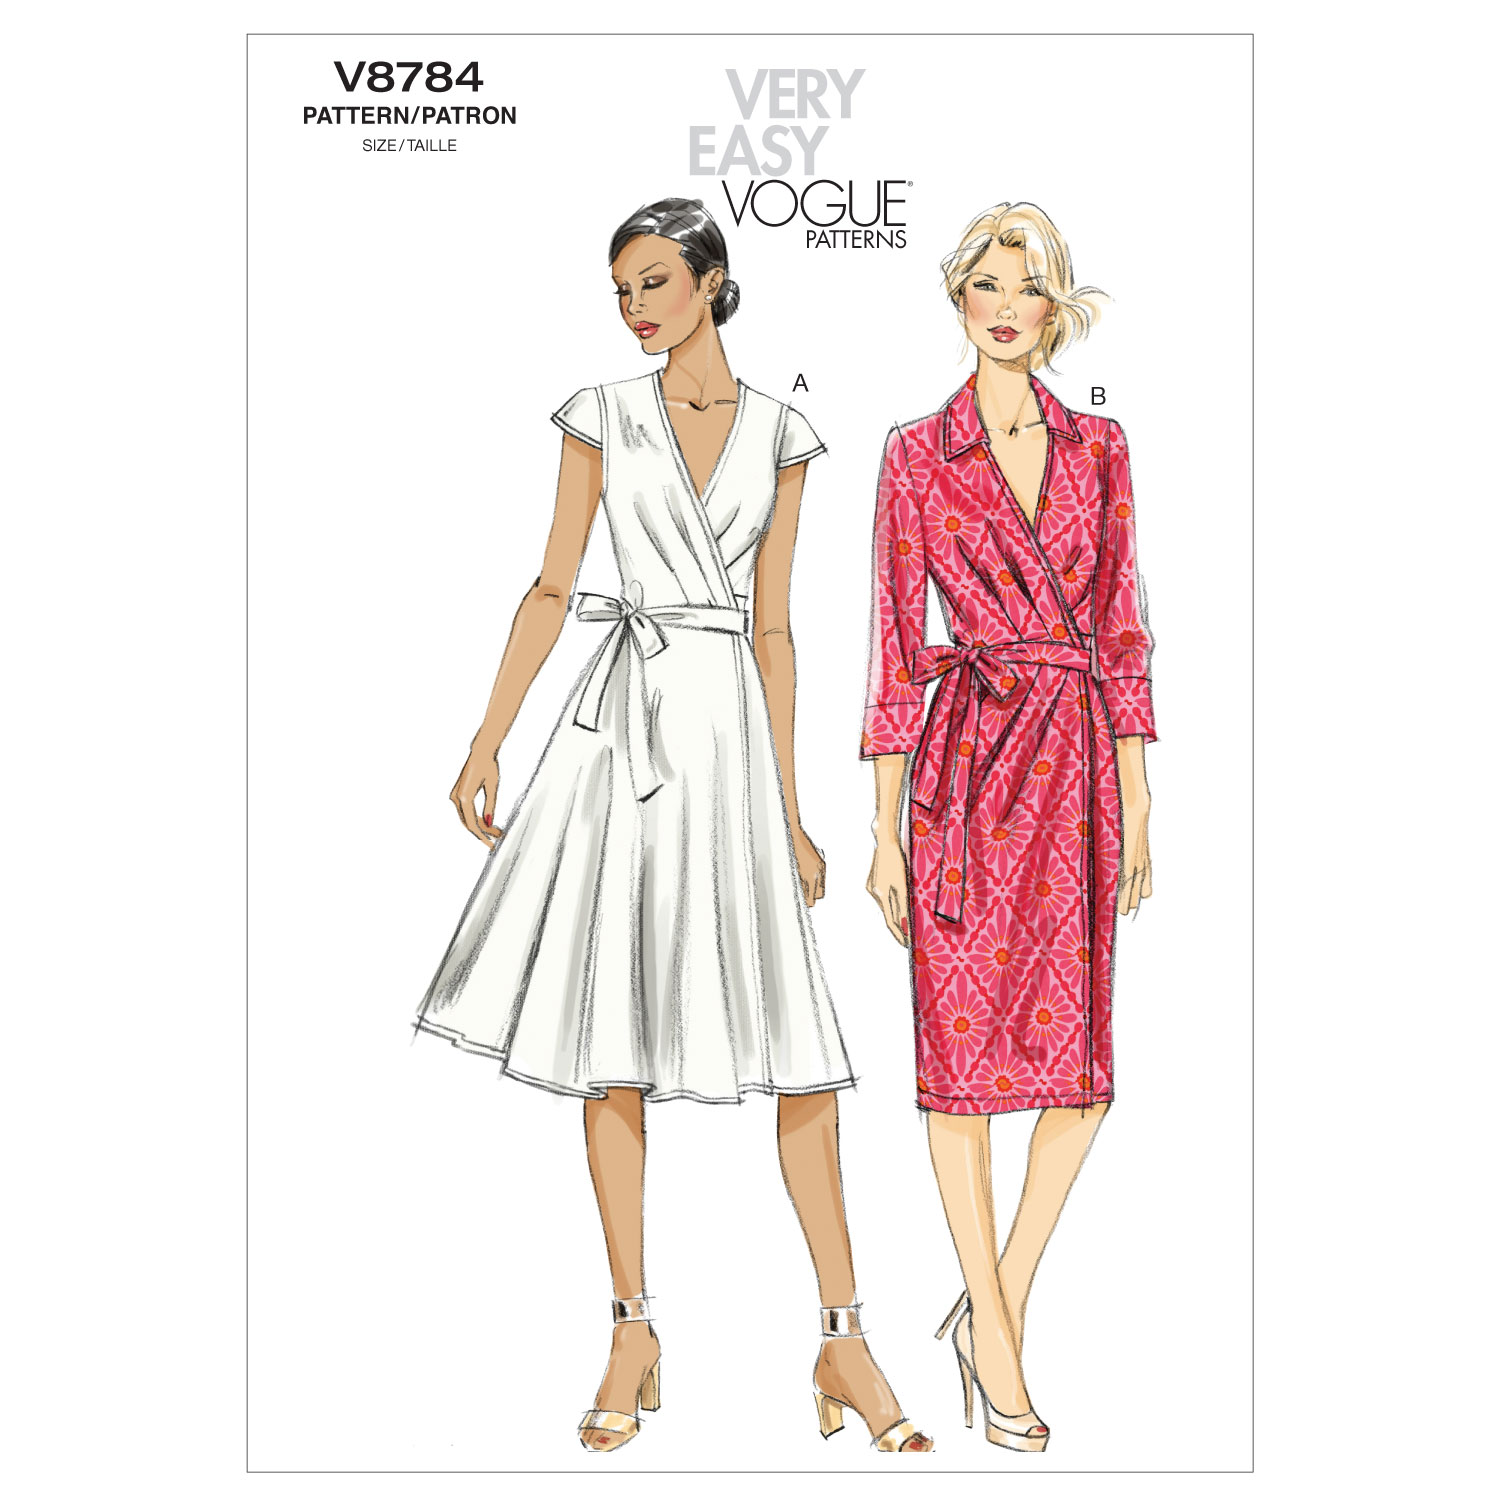 Vogue Patterns Misses Dress-V8784